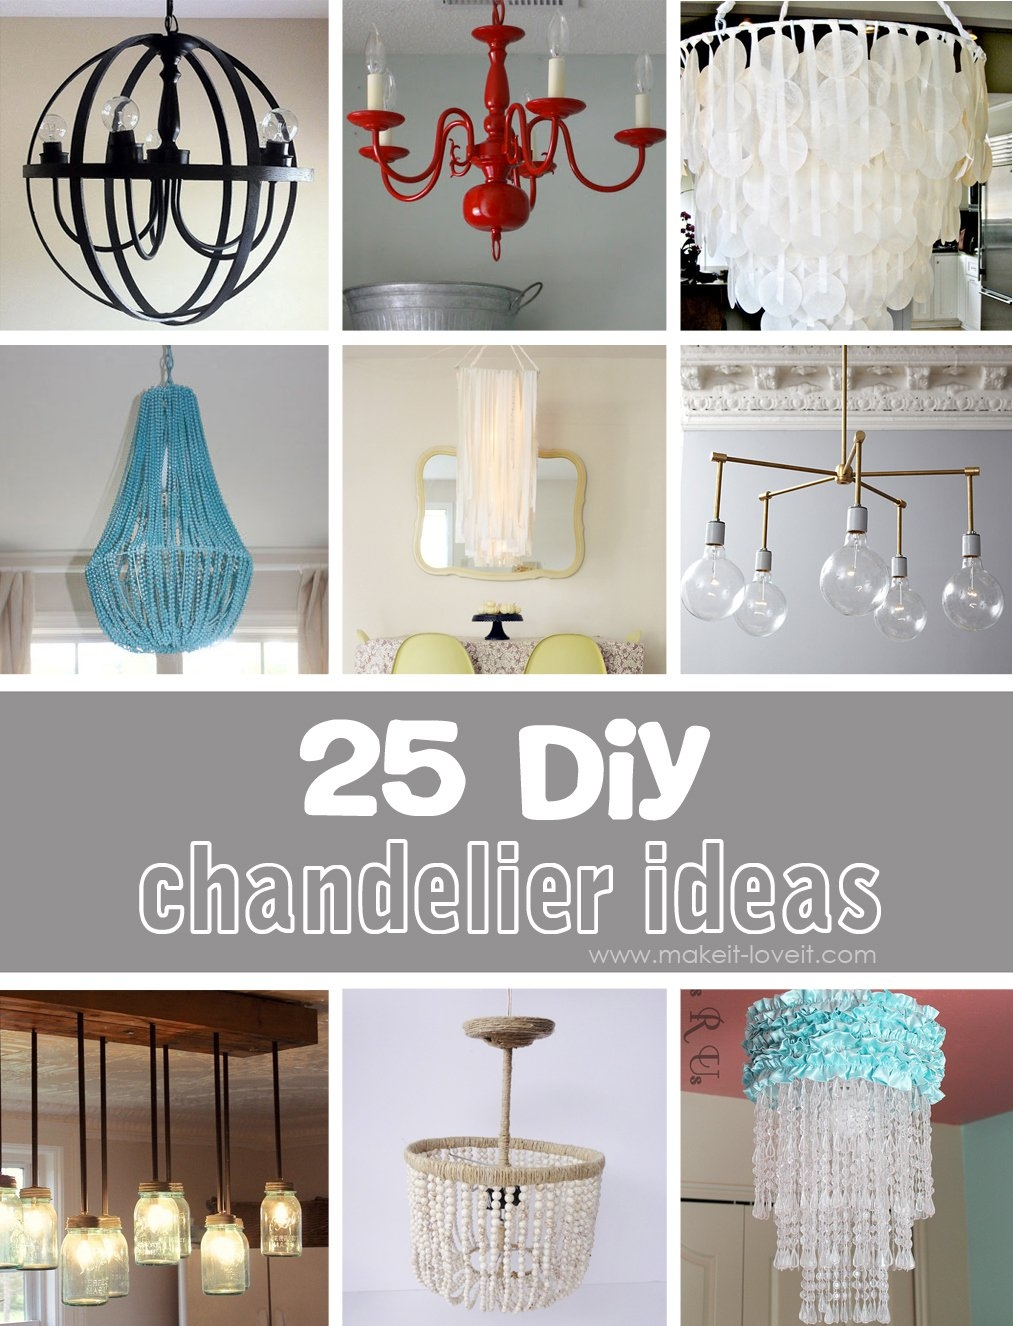 25 Diy Chandelier Ideas Make It And Love It Throughout Small Turquoise Beaded Chandeliers (Image 2 of 25)